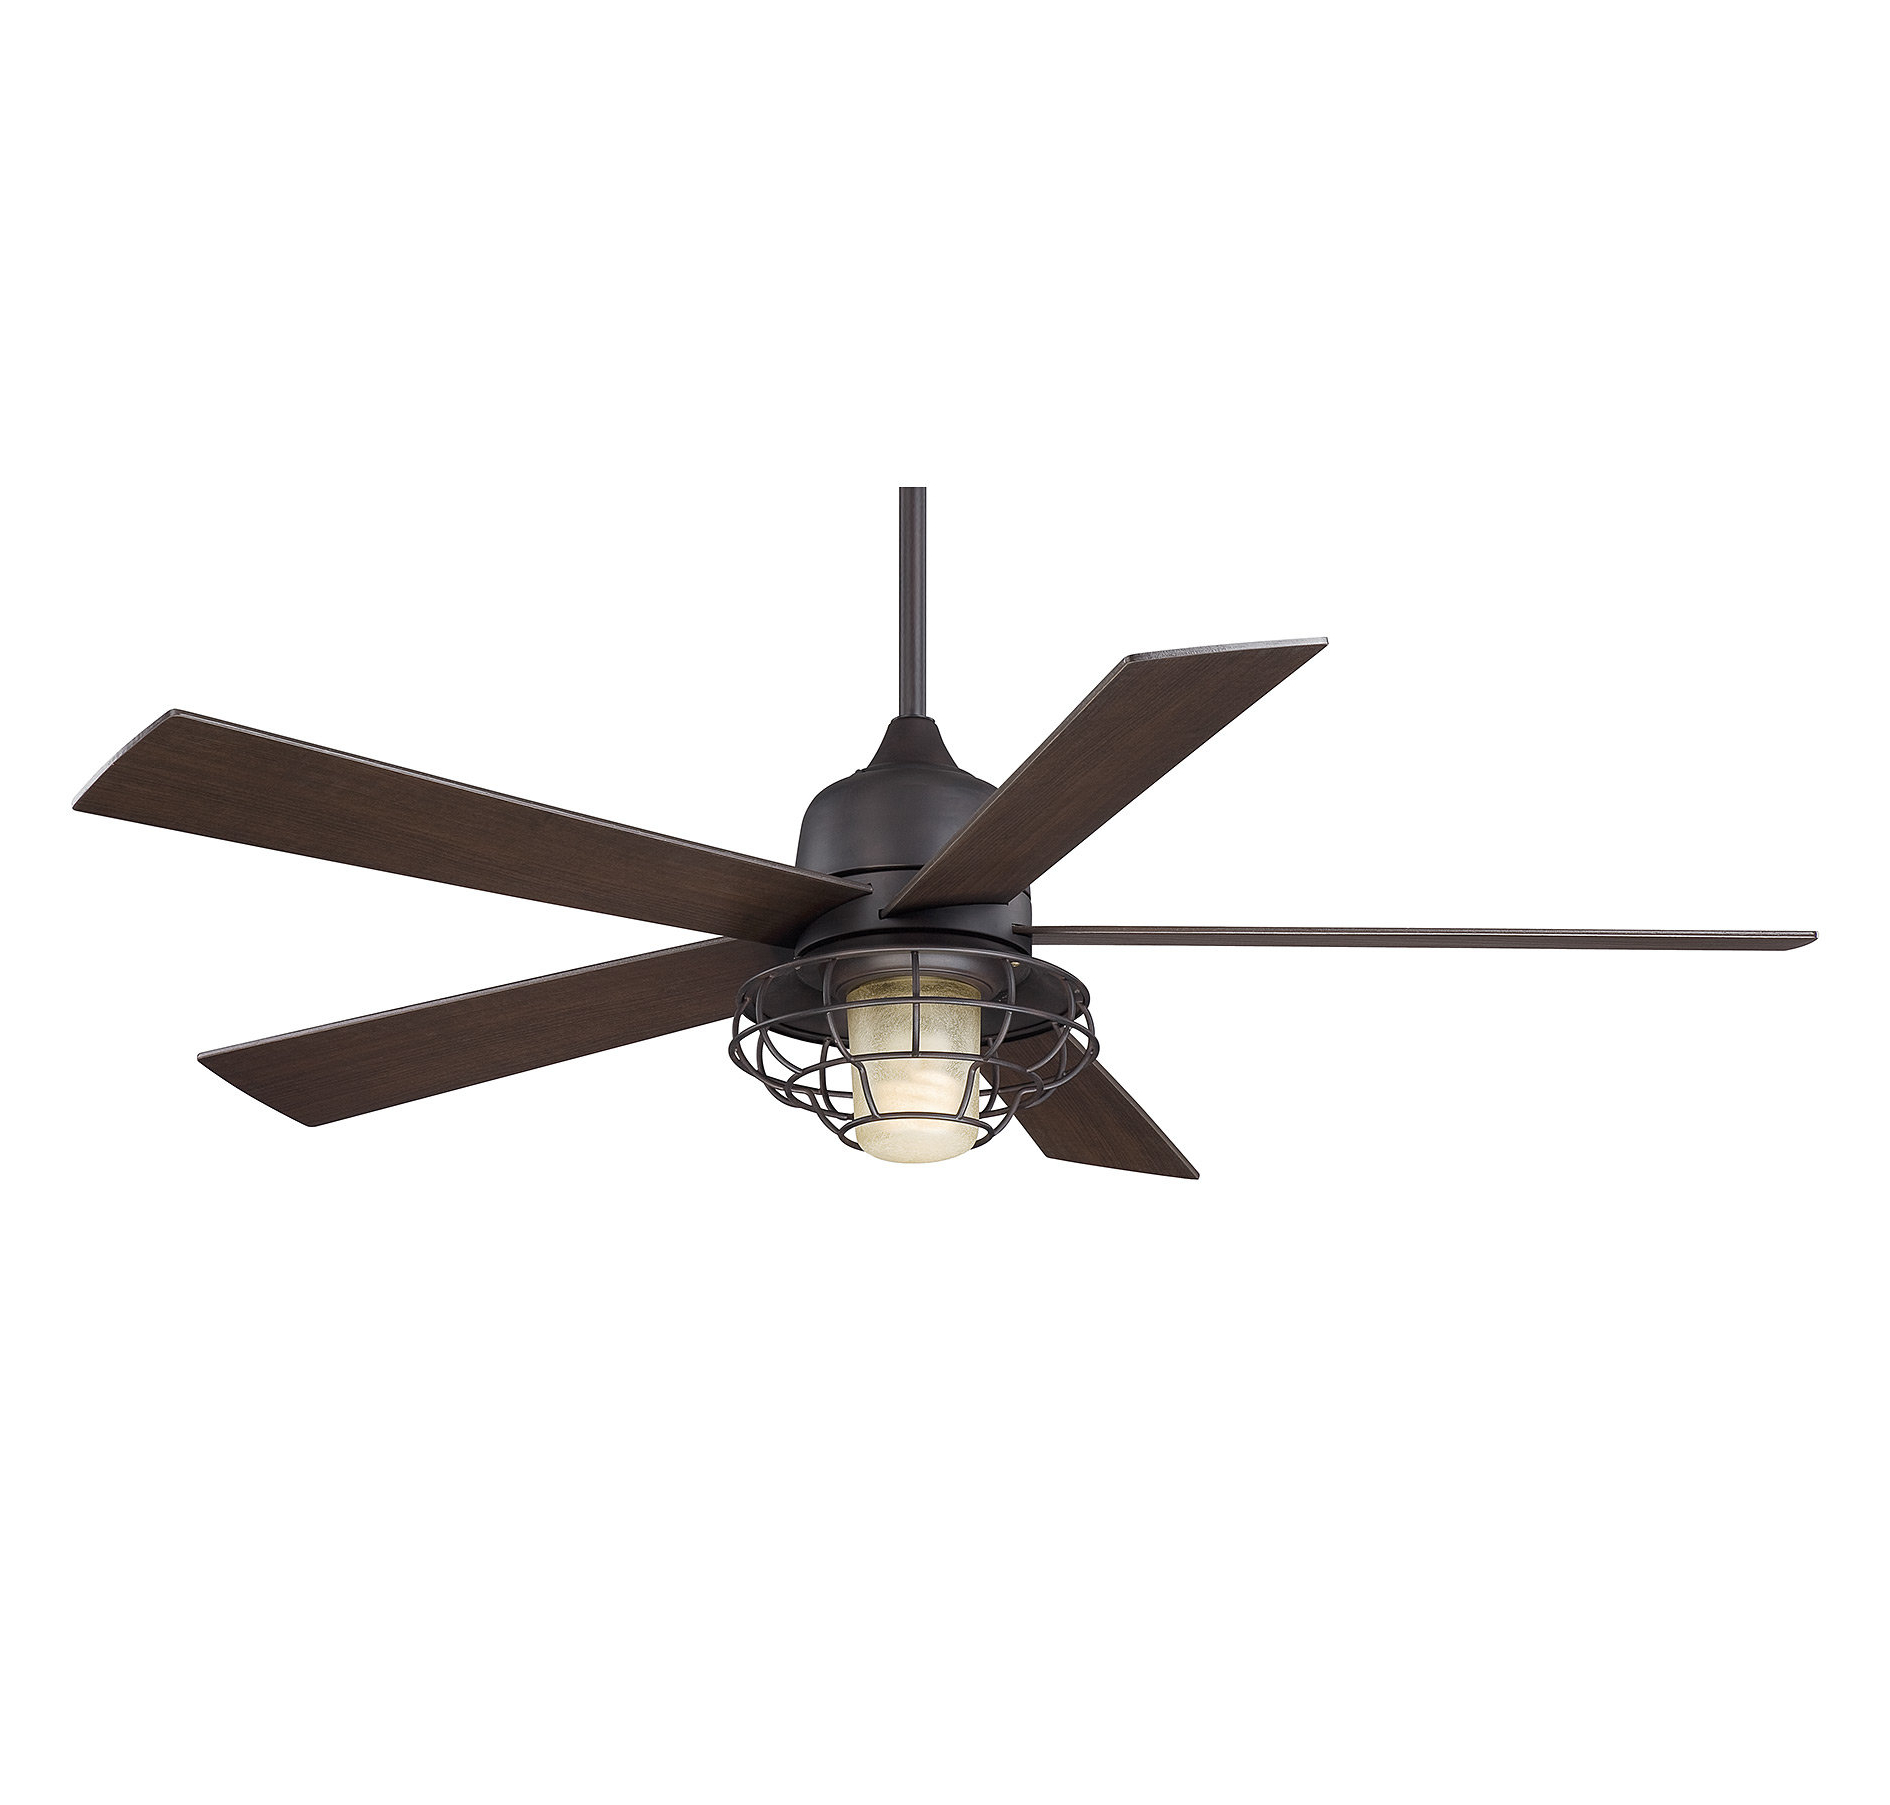 "Glenpool 5 Blade Ceiling Fans Intended For Most Recently Released 52"" Charo Damp Location 5 Blade Ceiling Fan With Remote, Light Kit Included (Gallery 19 of 20)"